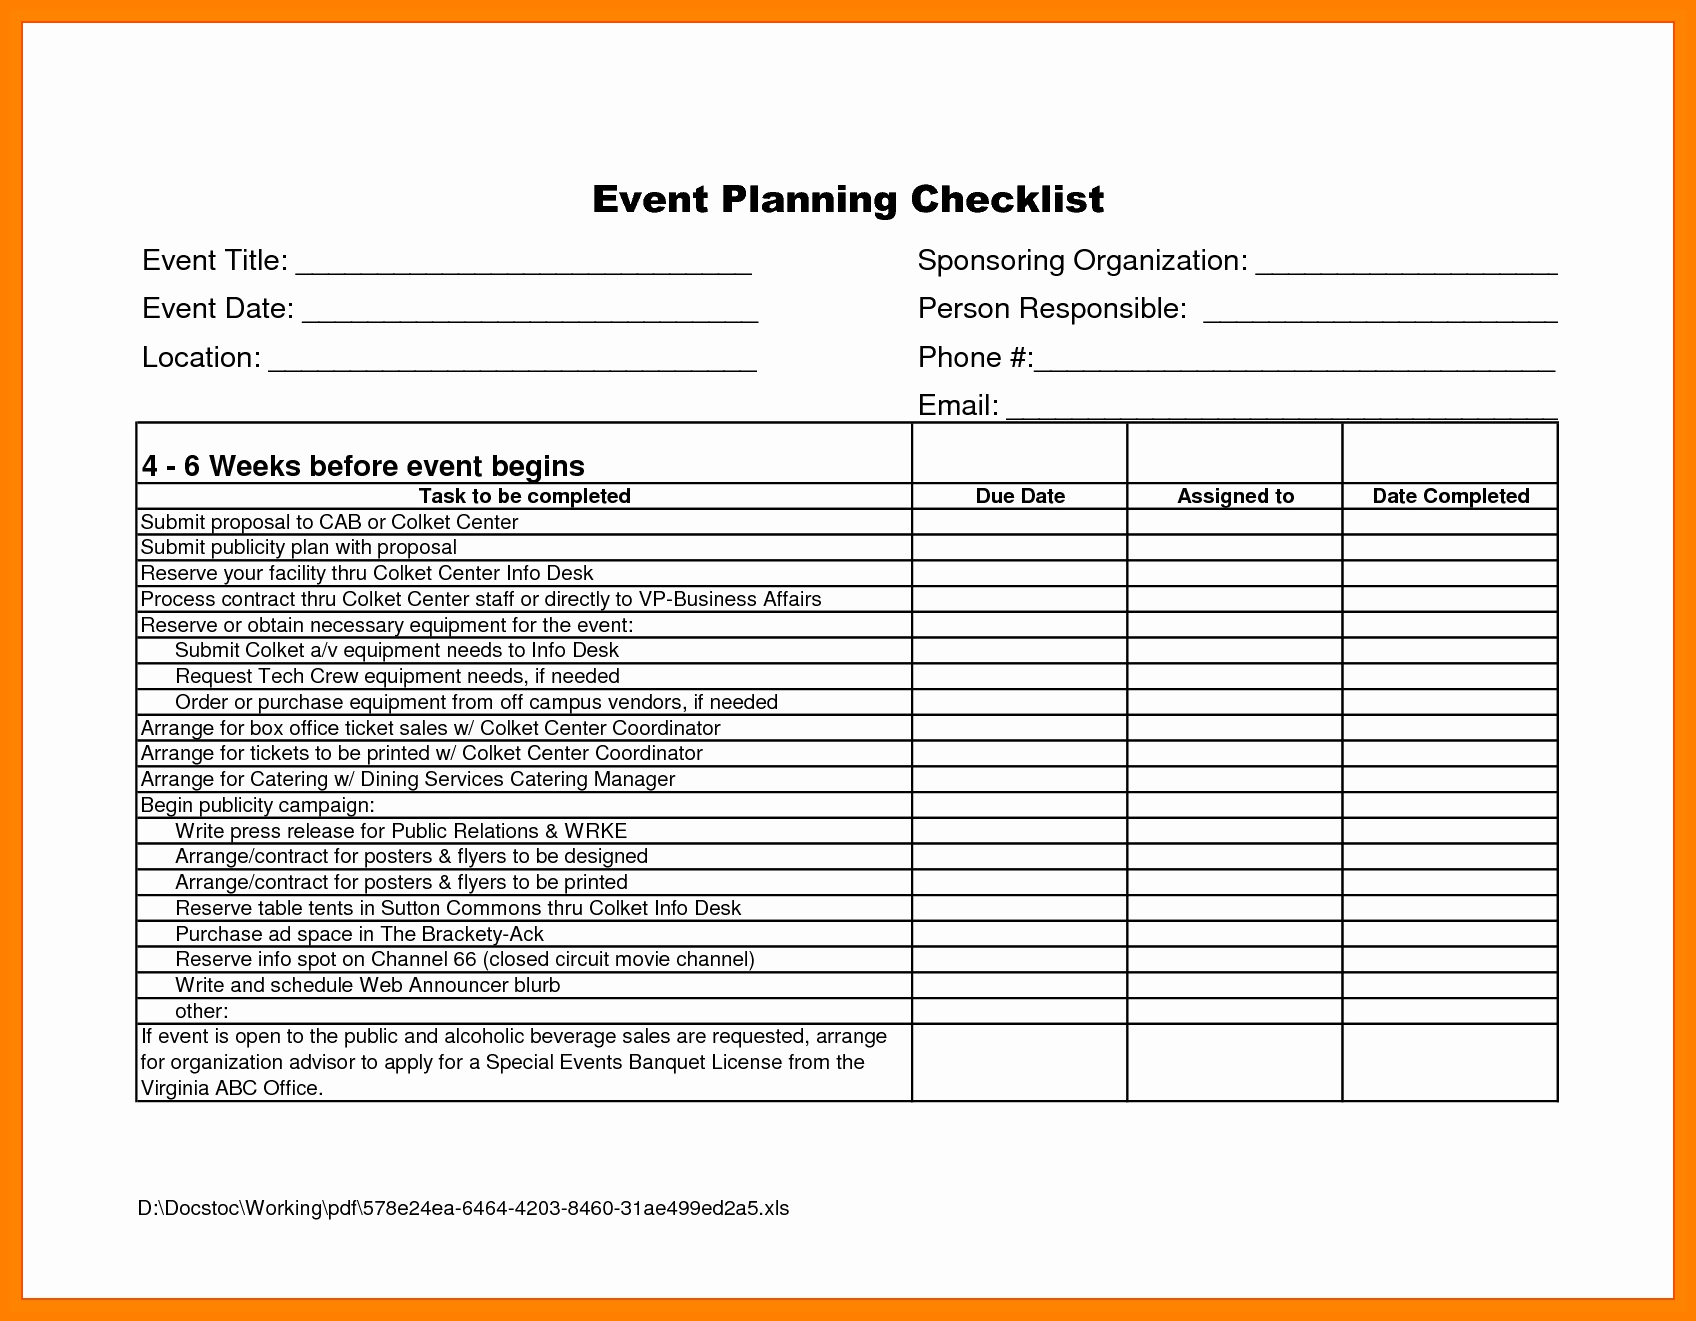 Event Management Spreadsheet With 8  Event Planning Checklist Spreadsheet  Business Opportunity Program